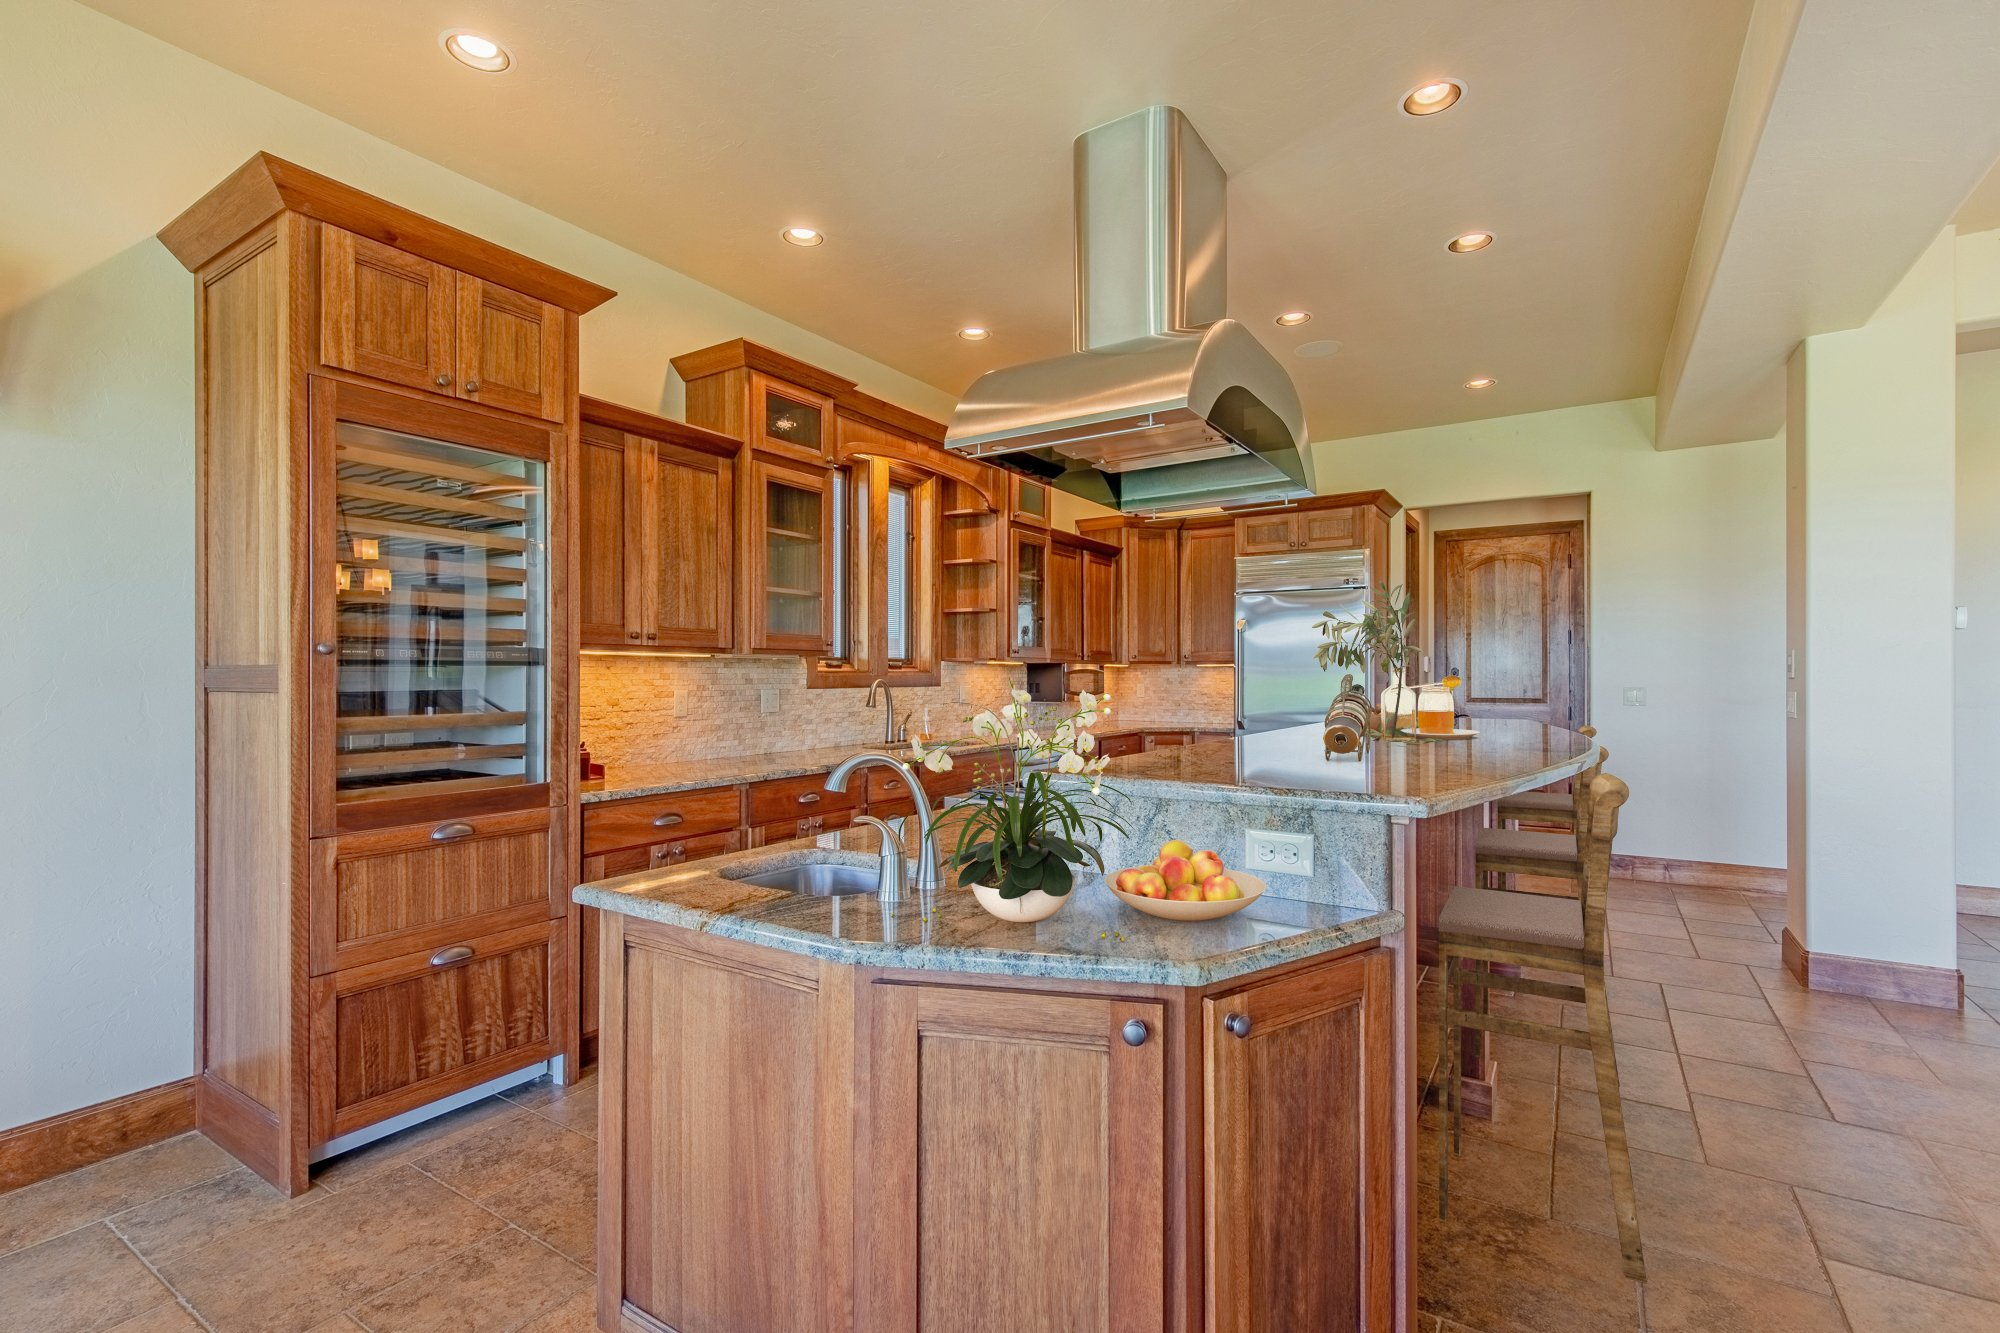 Kitchen with Granite Counters - 924 Courthouse Peak Lane Montrose, CO 81403 - Atha Team Golf Luxury Real Estate